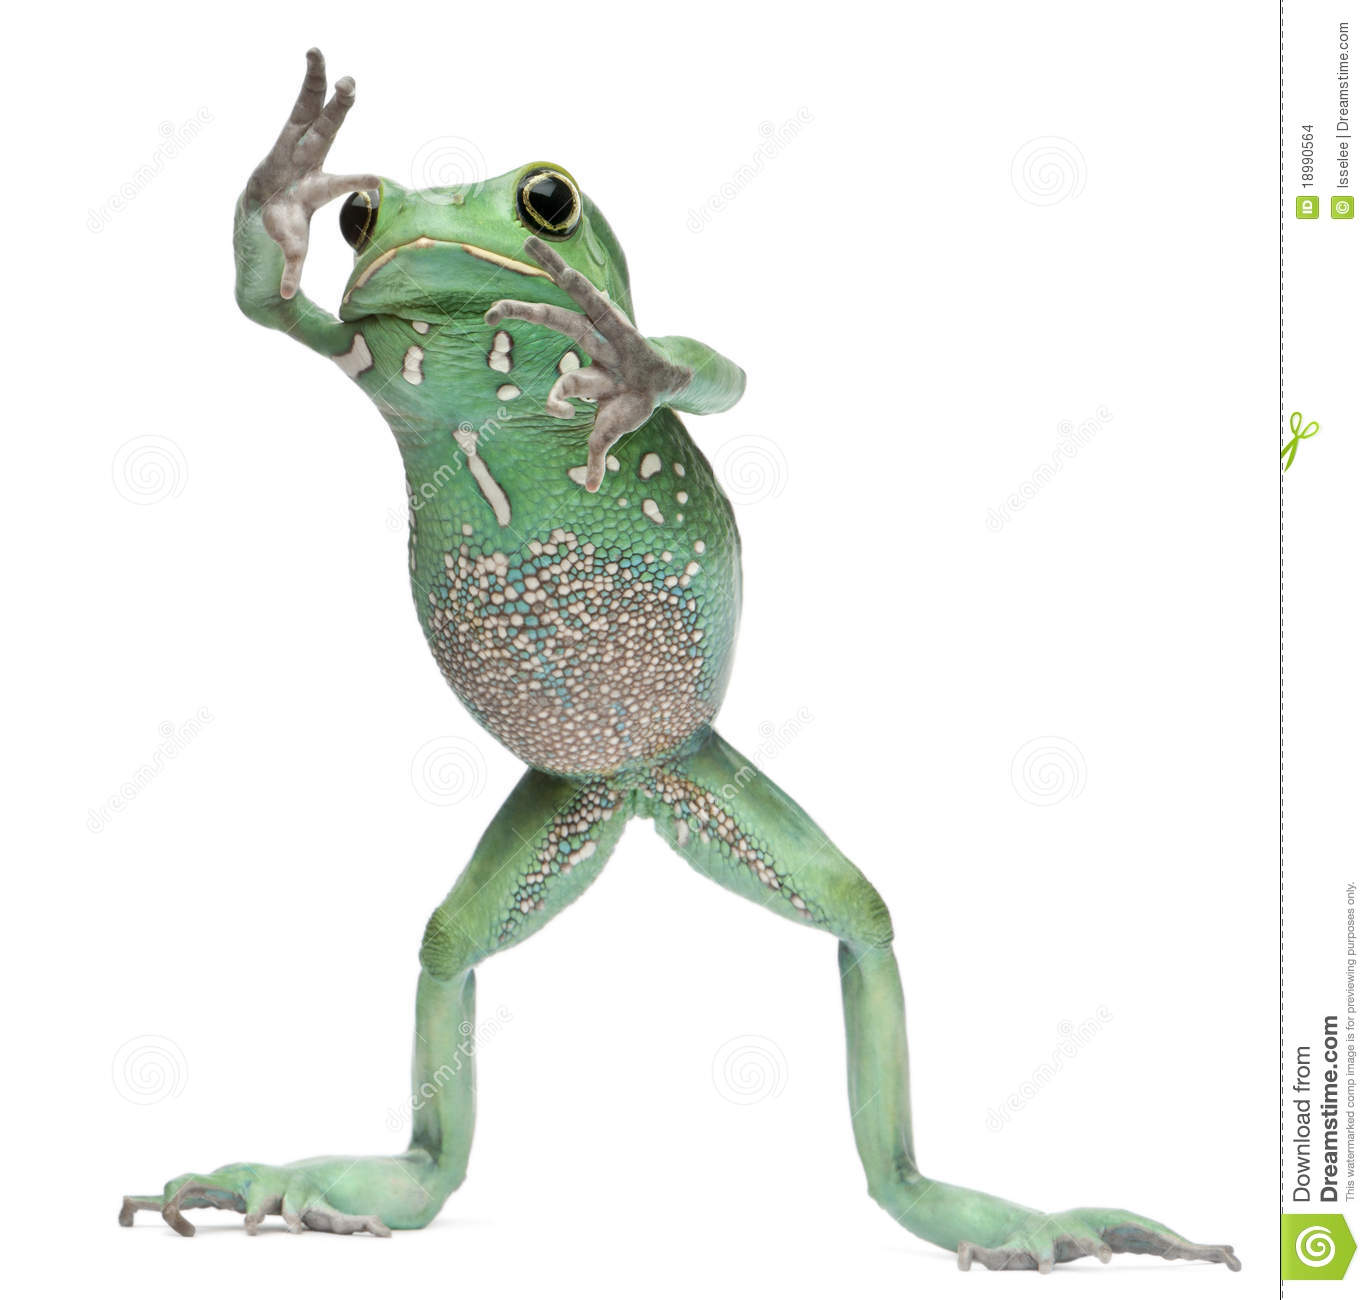 Waxy Tree Frog - Lessons - Tes Teach